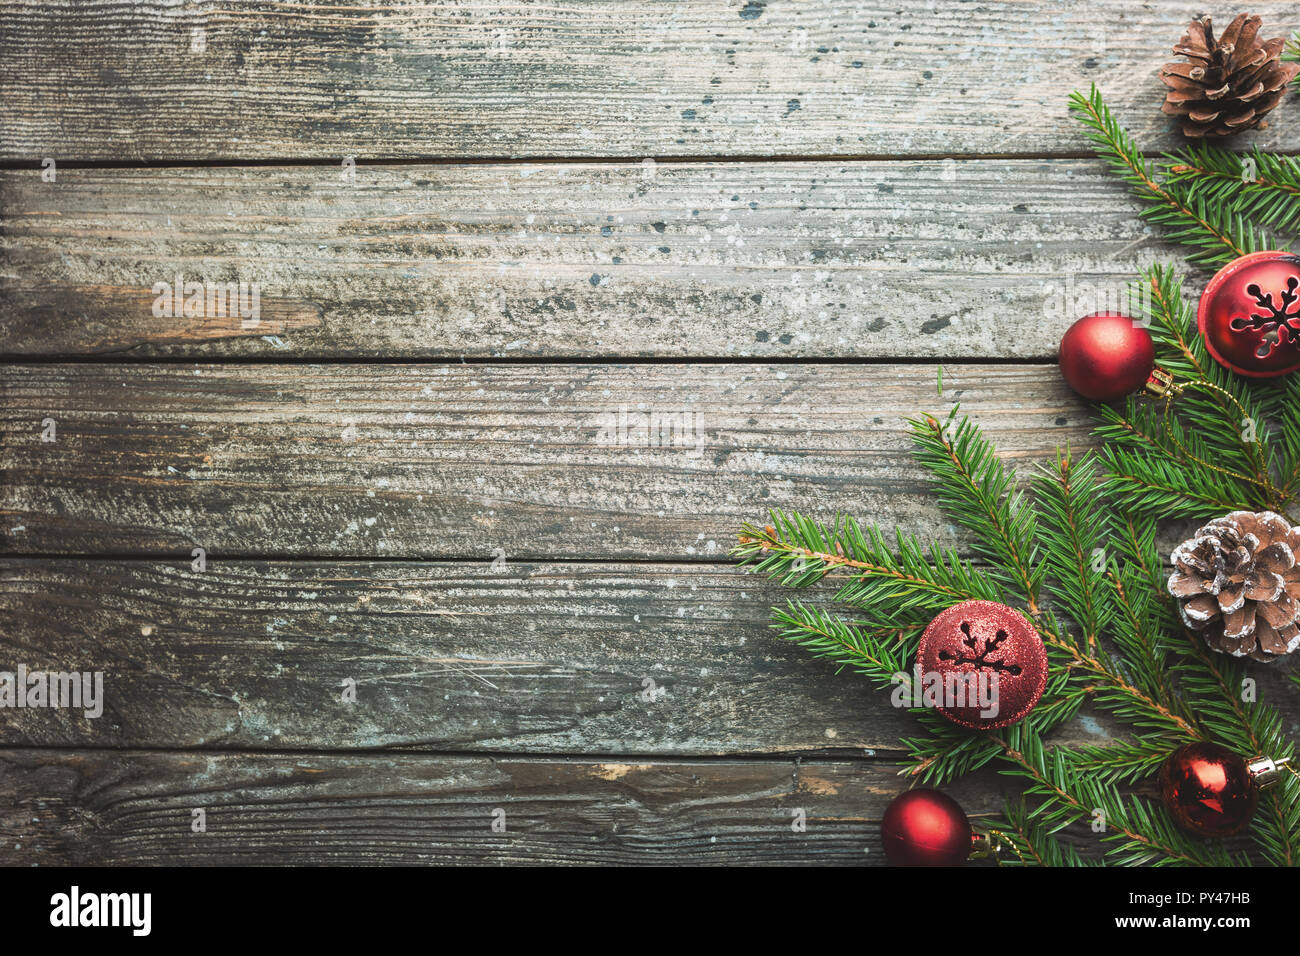 Christmas Wood Background.Christmas Wooden Background With Fir Tree And Decorations